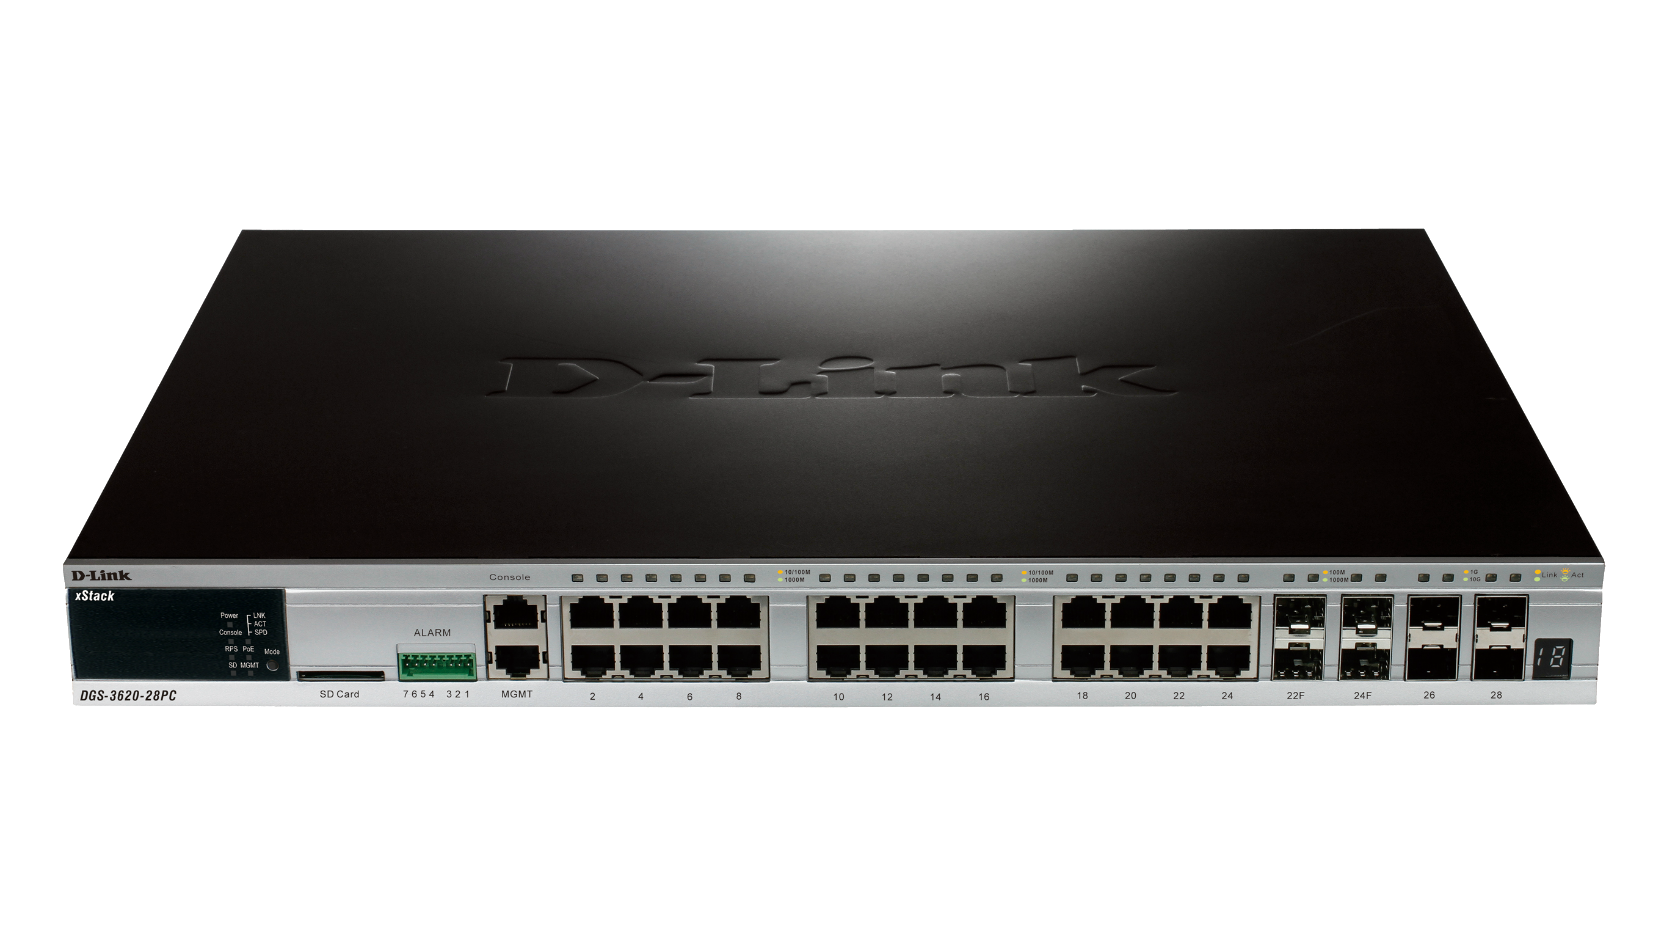 D-Link DGS-3620-52T-EI L3 Gigabit Switch Windows 7